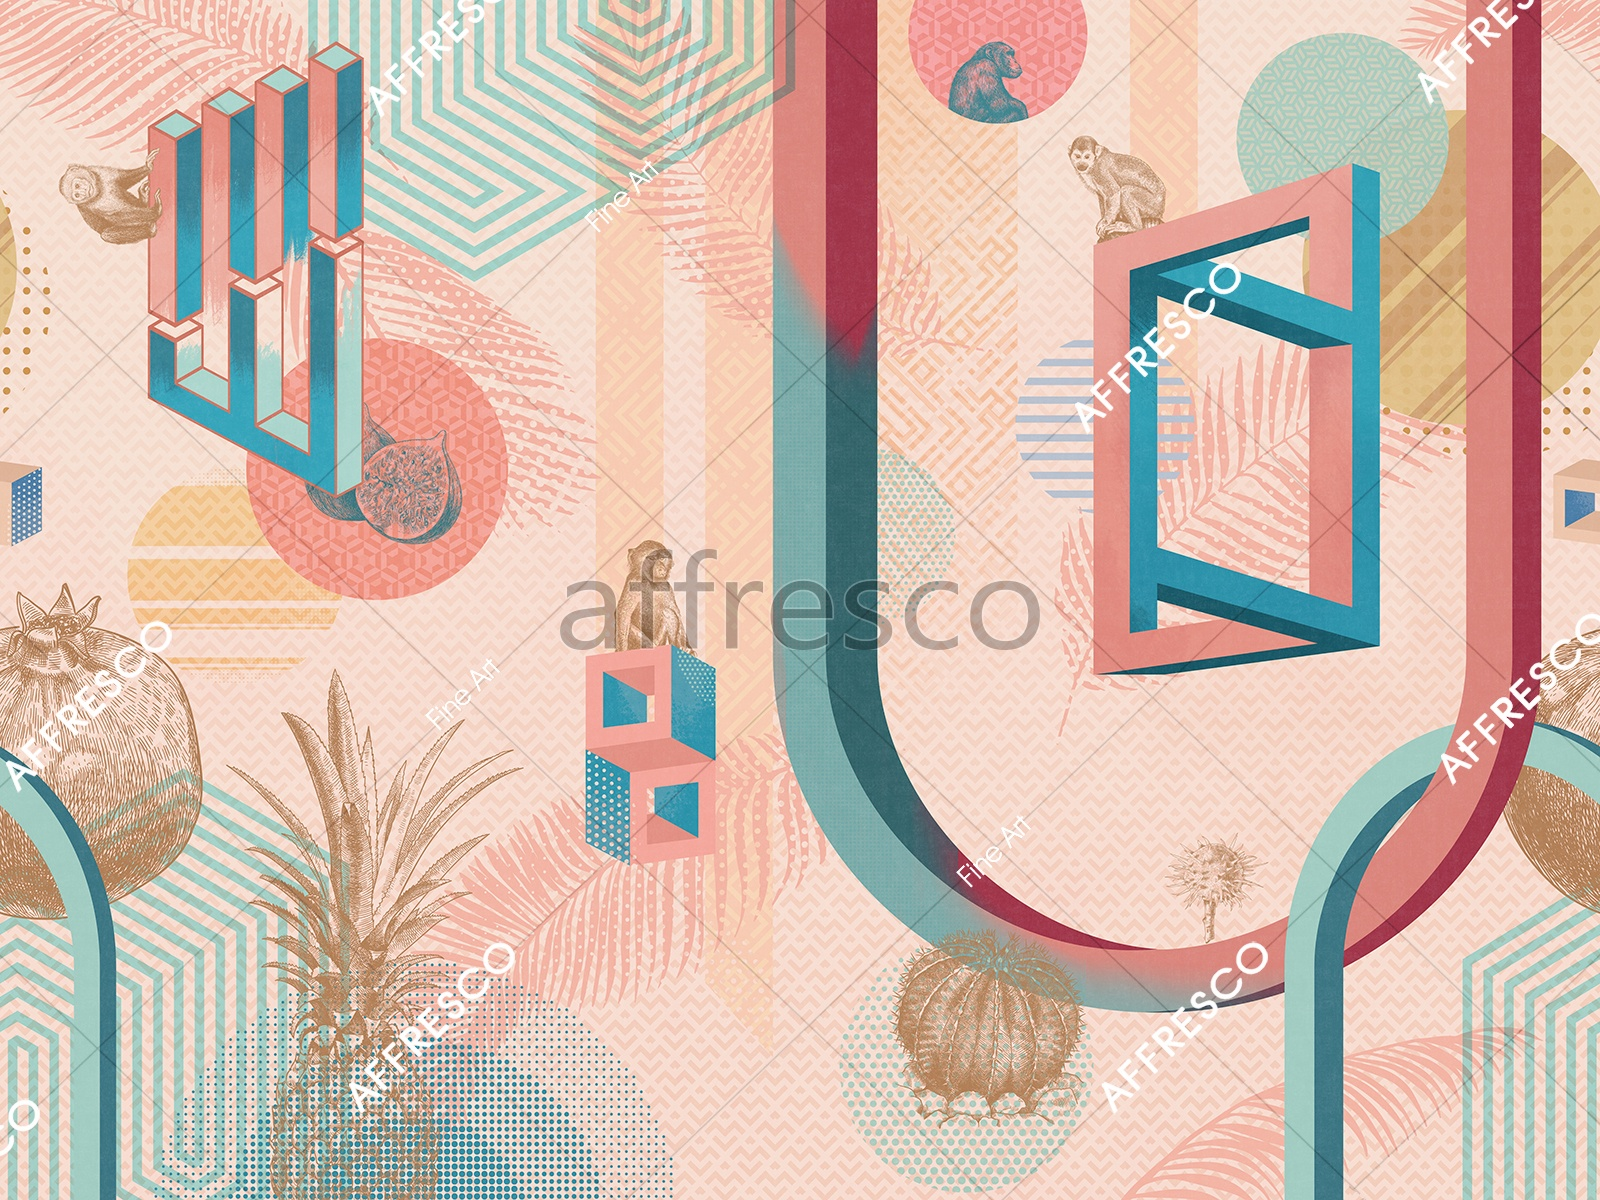 RE890-COL1 | Fine Art | Affresco Factory